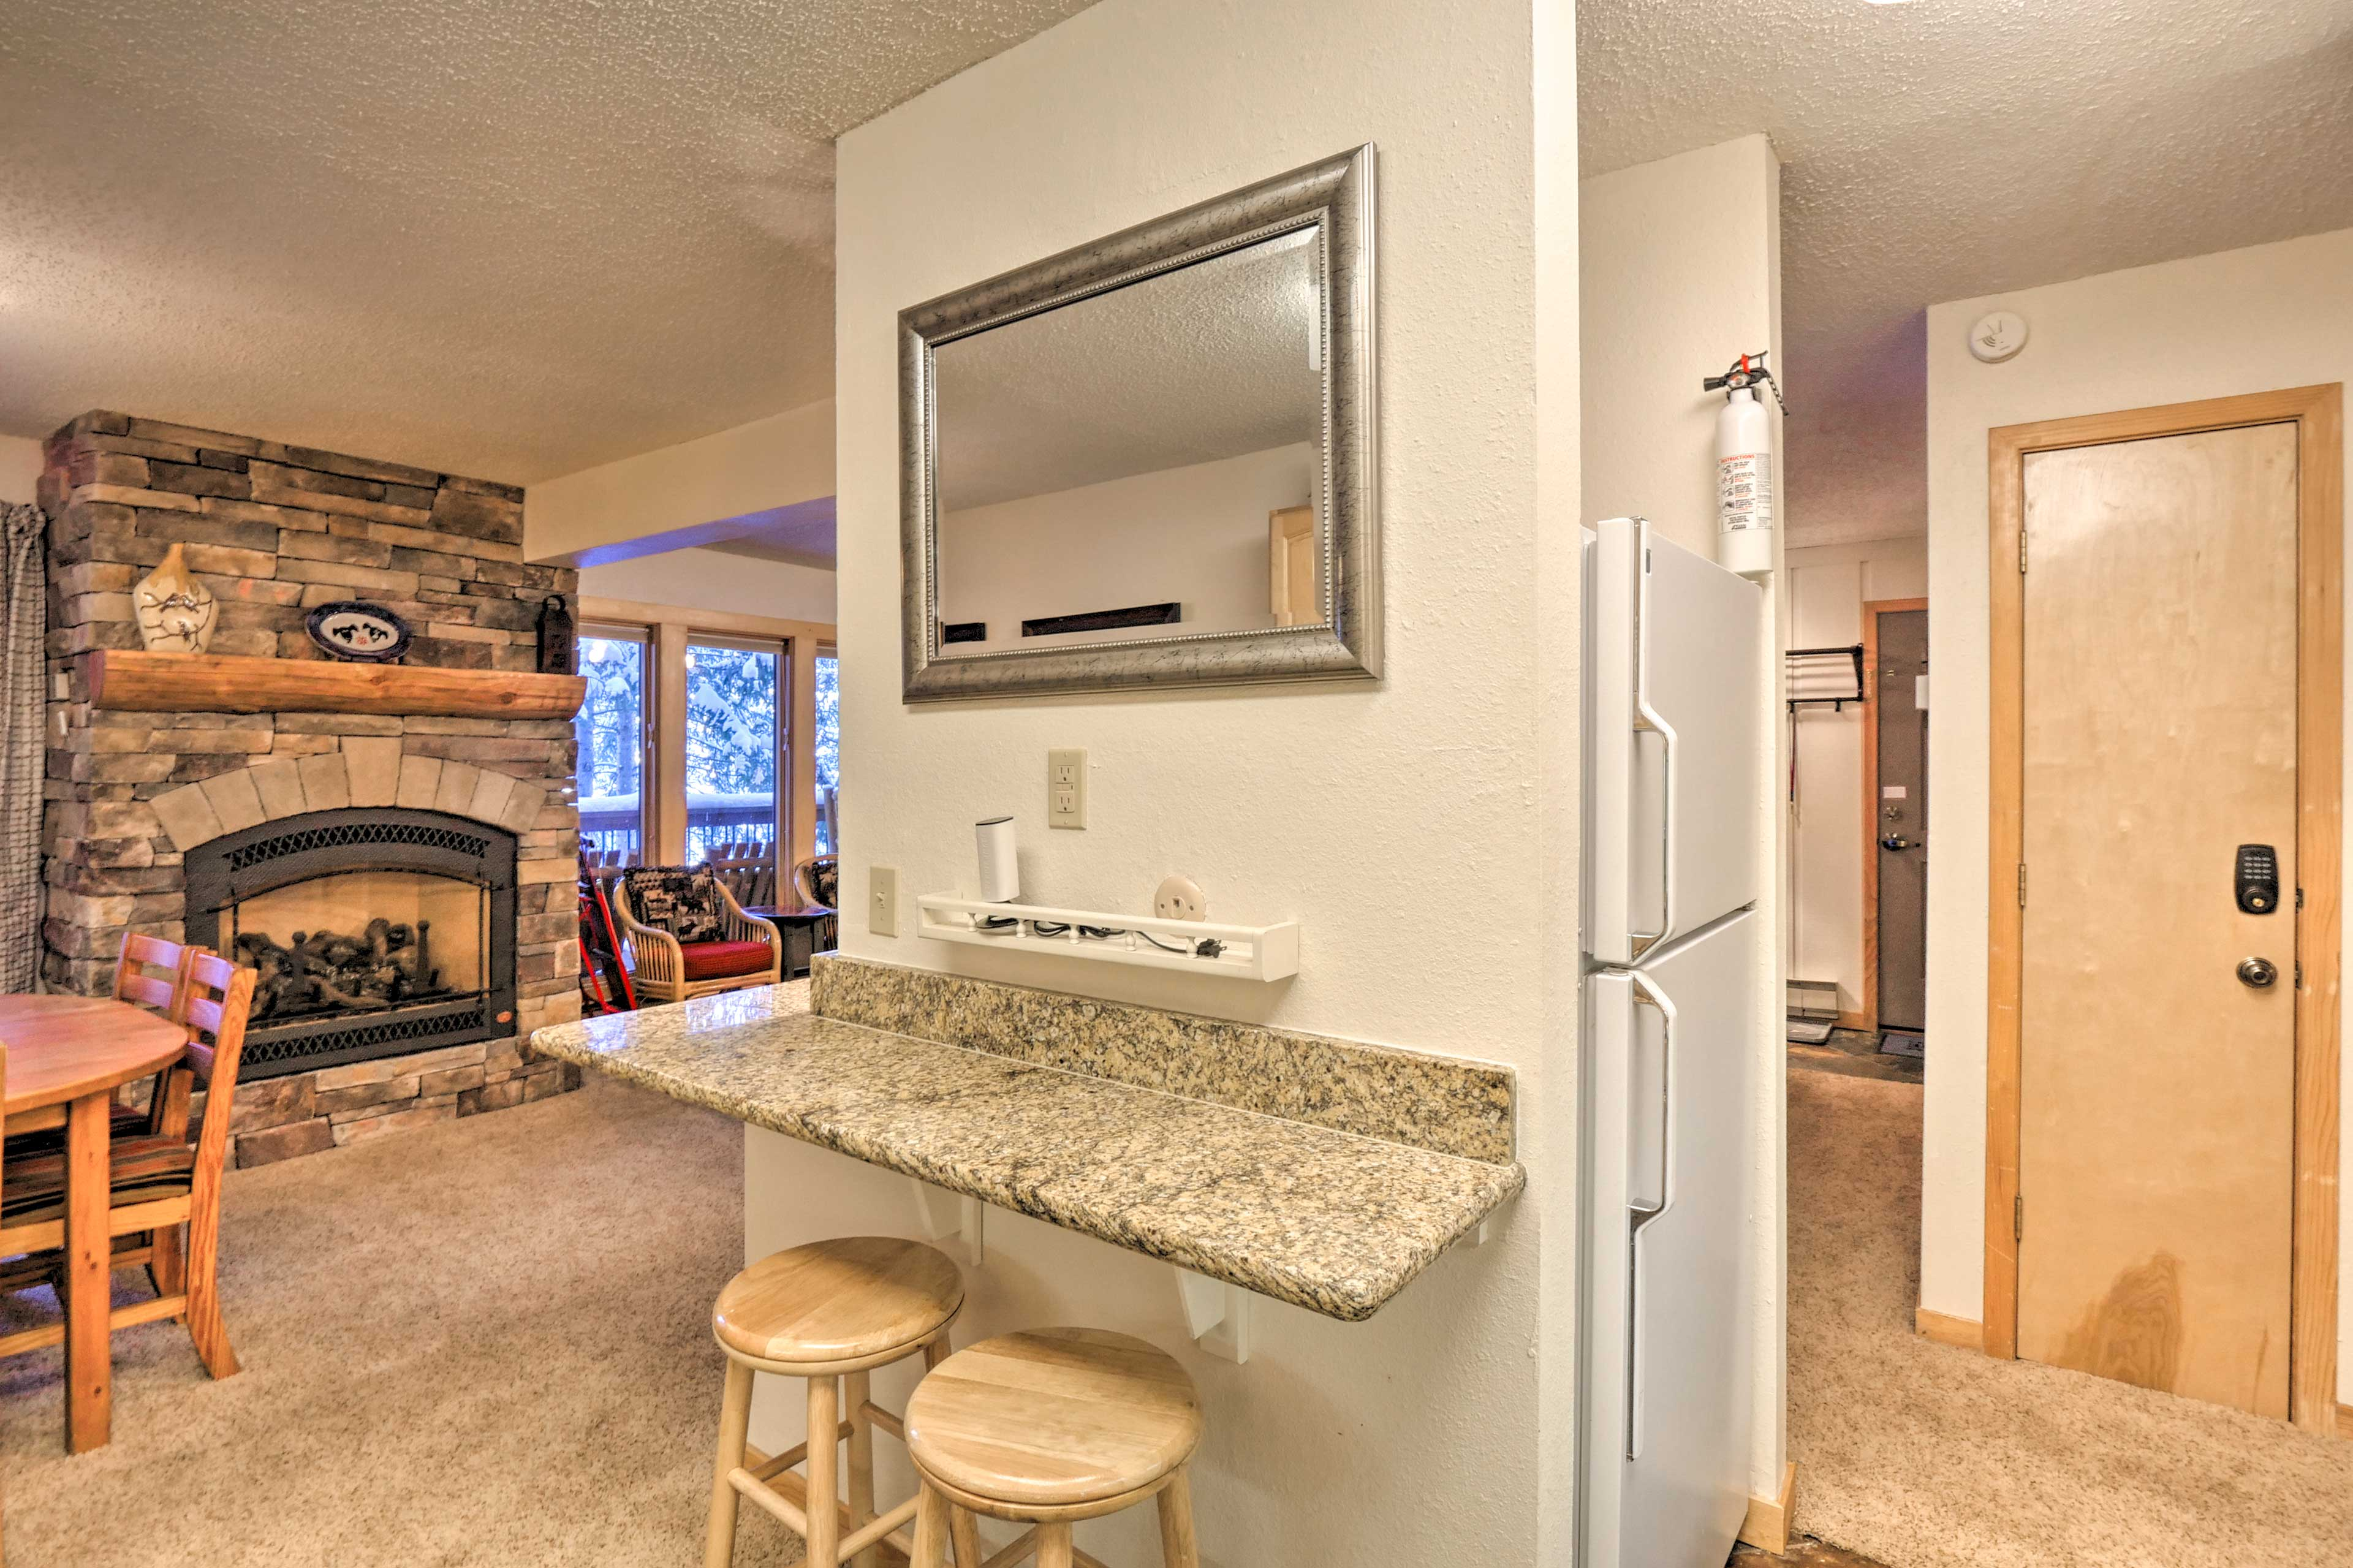 The fireplace creates a cozy ambiance in the unit.